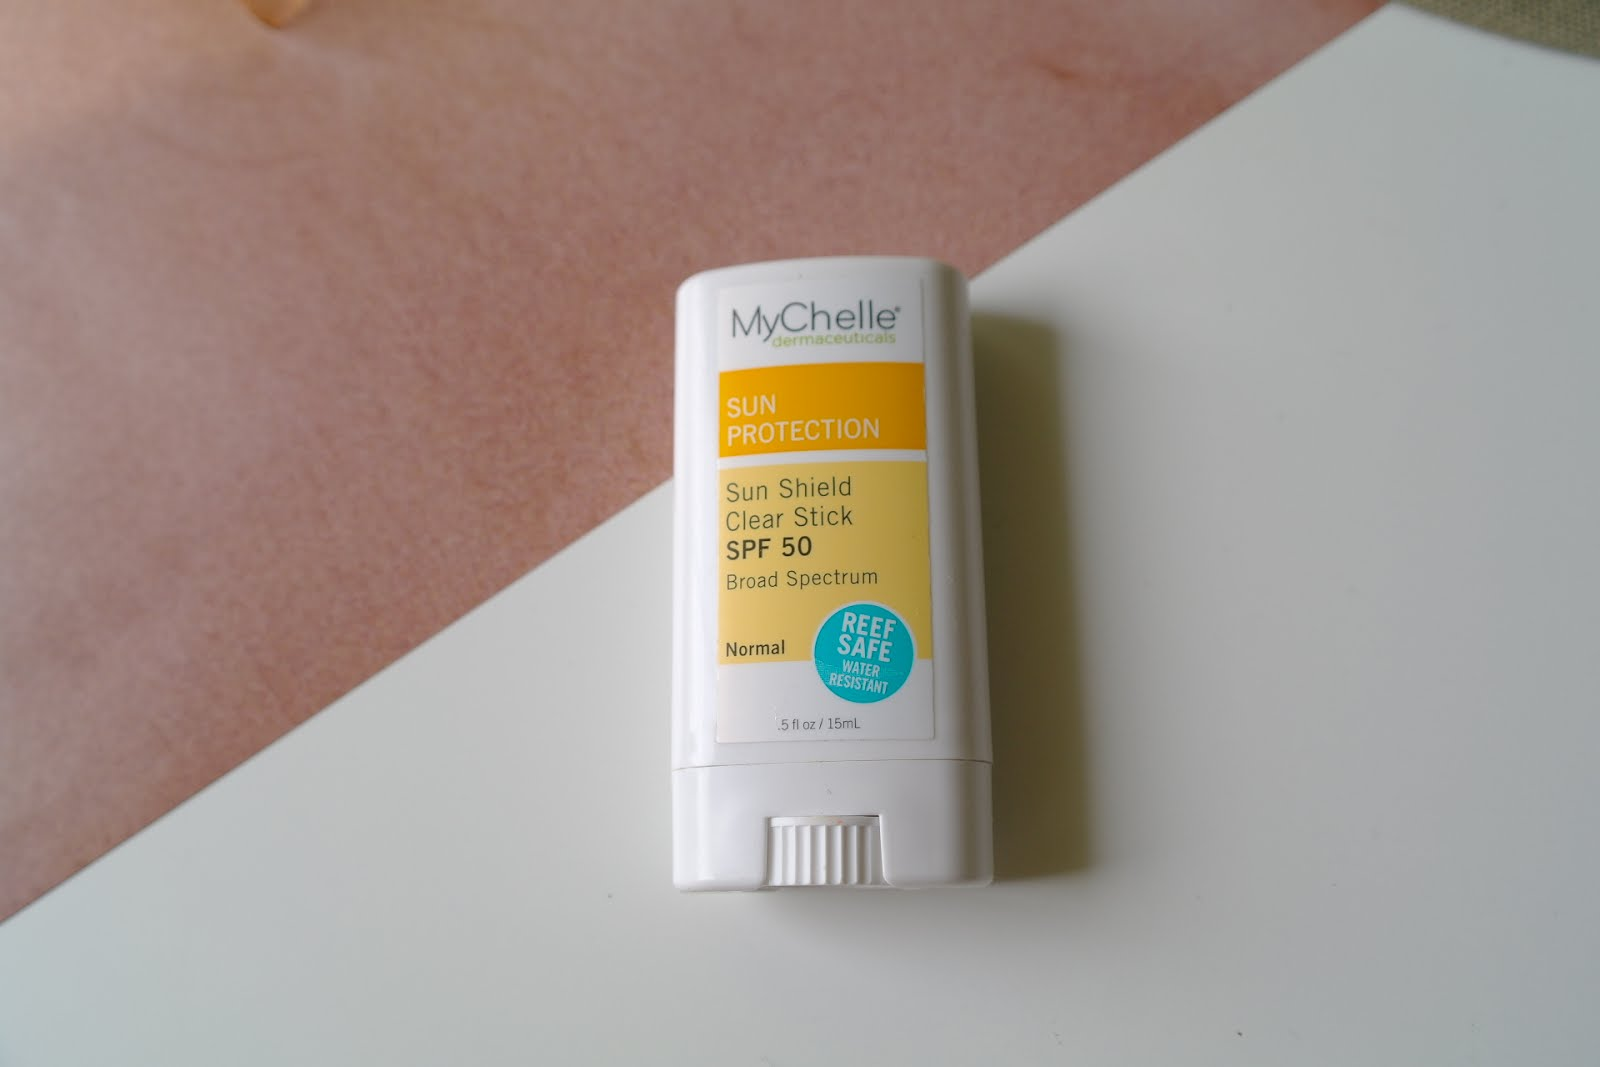 fluores: Mychelle Review of 4 Sun Protection Products